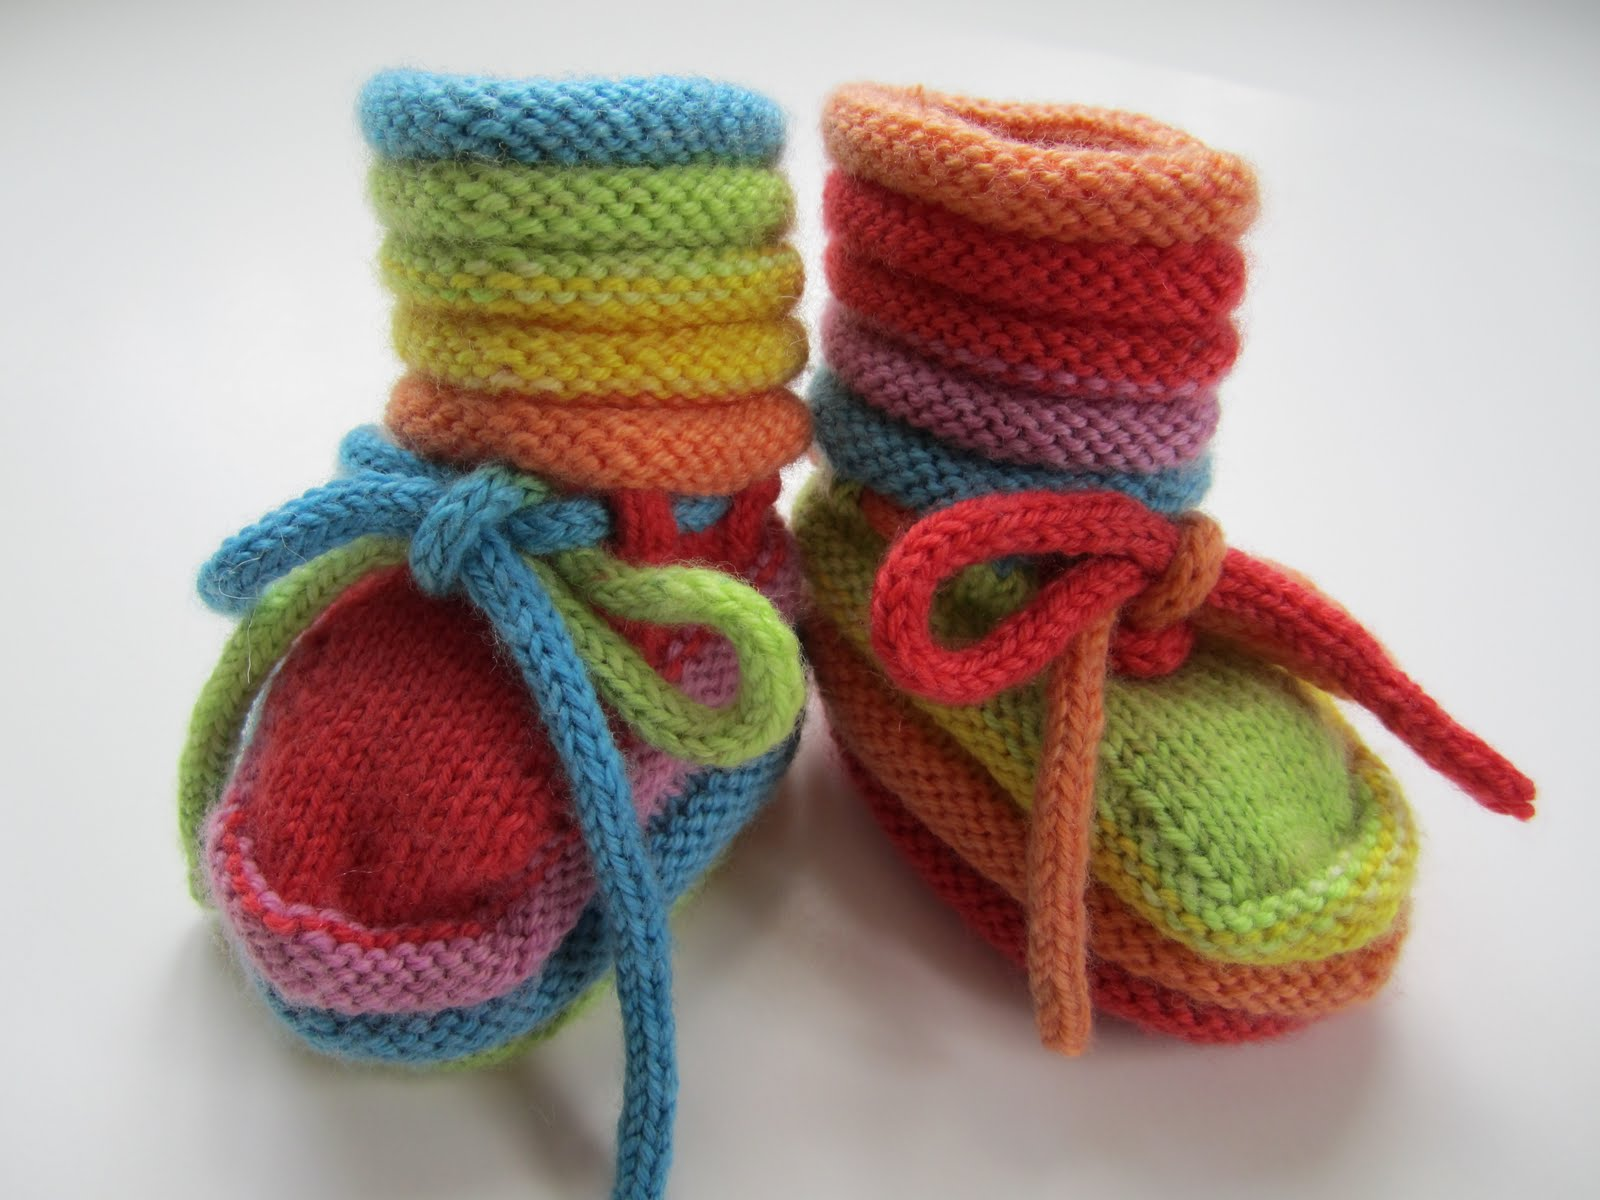 Wool Diaper Cover Knitting Pattern : Pin Baby Bootie Pattern 4 Designed For Preemie And Newborn Babies Up To 12 on...